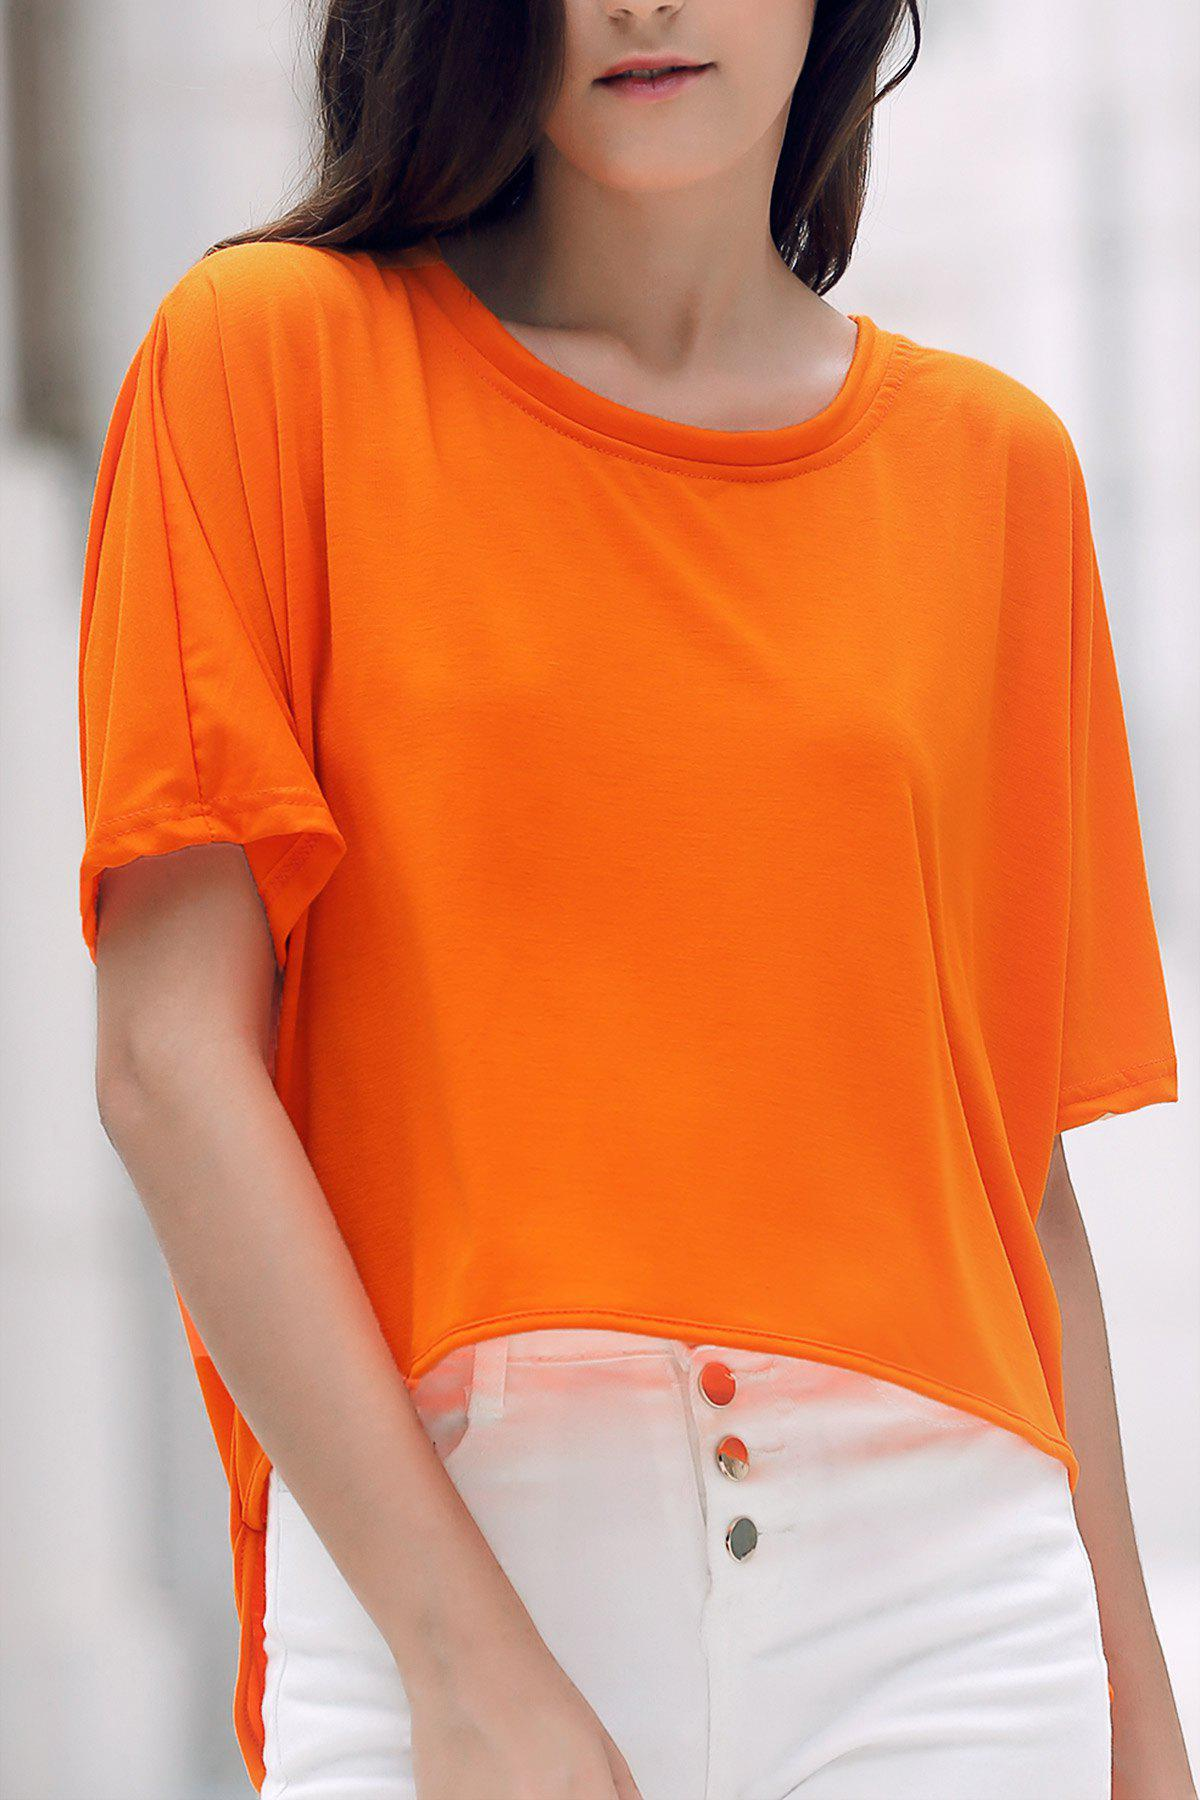 Concise Solid Color Batwing Sleeve Asymmetric T-Shirt Dress For Women - ORANGE ONE SIZE(FIT SIZE XS TO M)